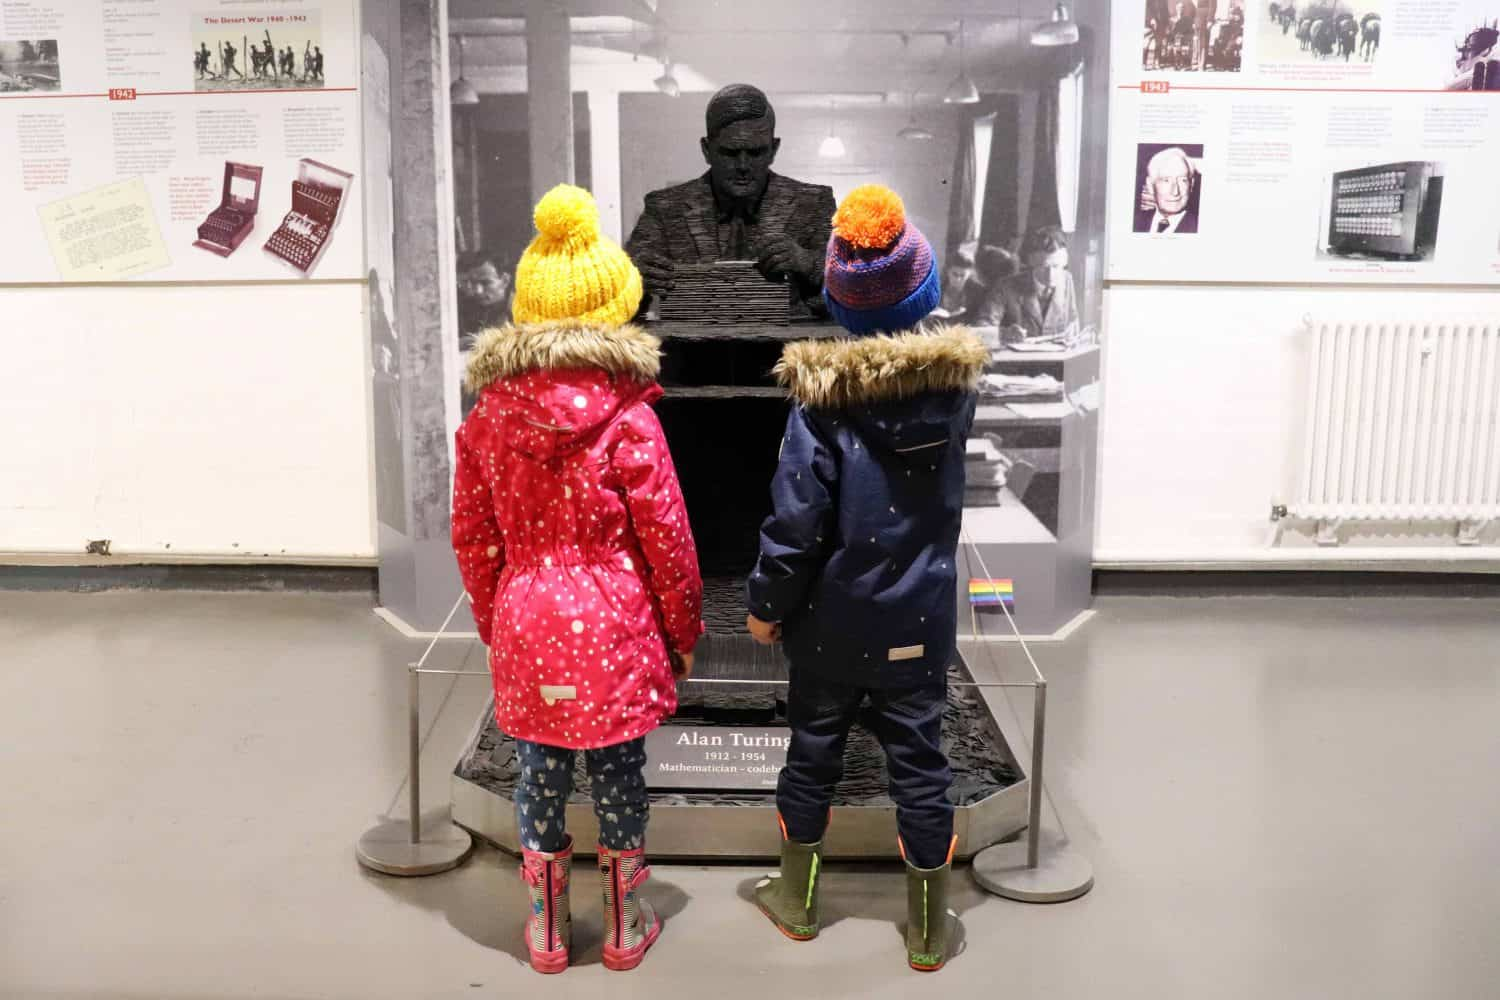 Learning about Alan Turing at Bletchley Park